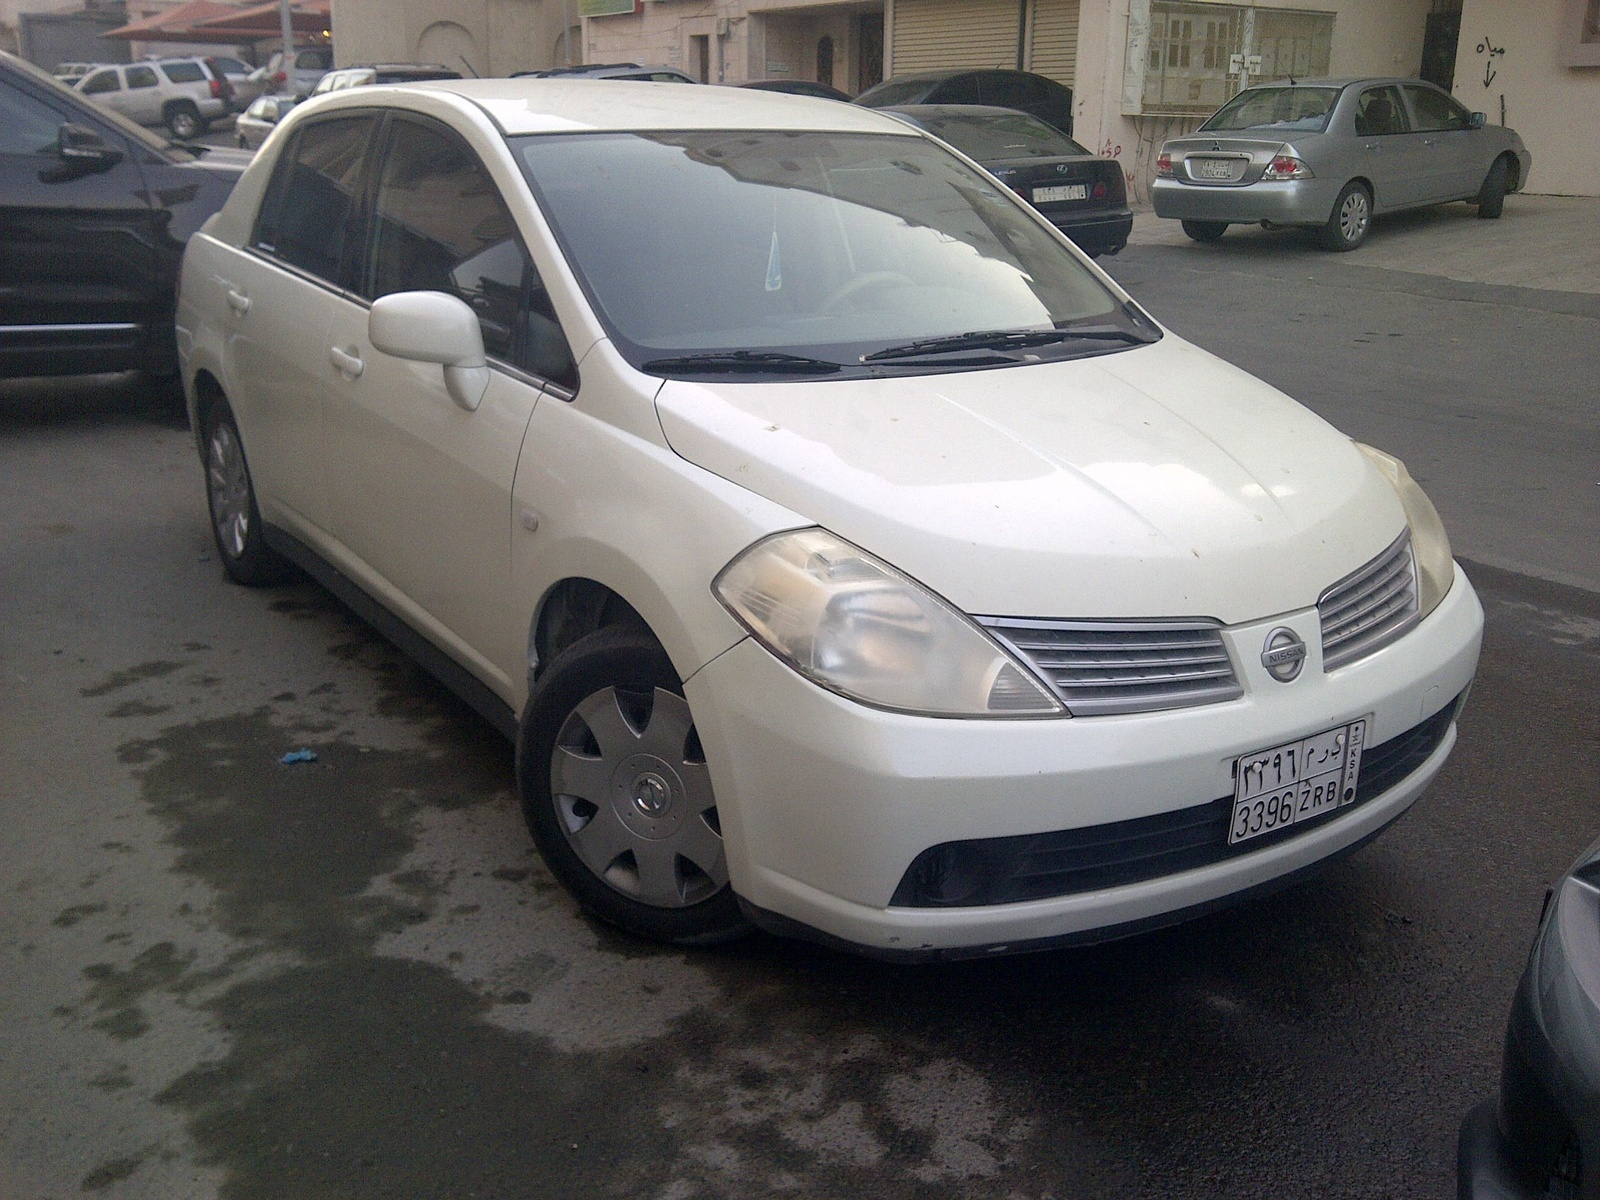 Bmw Used For Sale >> 2007 Nissan Tiida - Overview - CarGurus